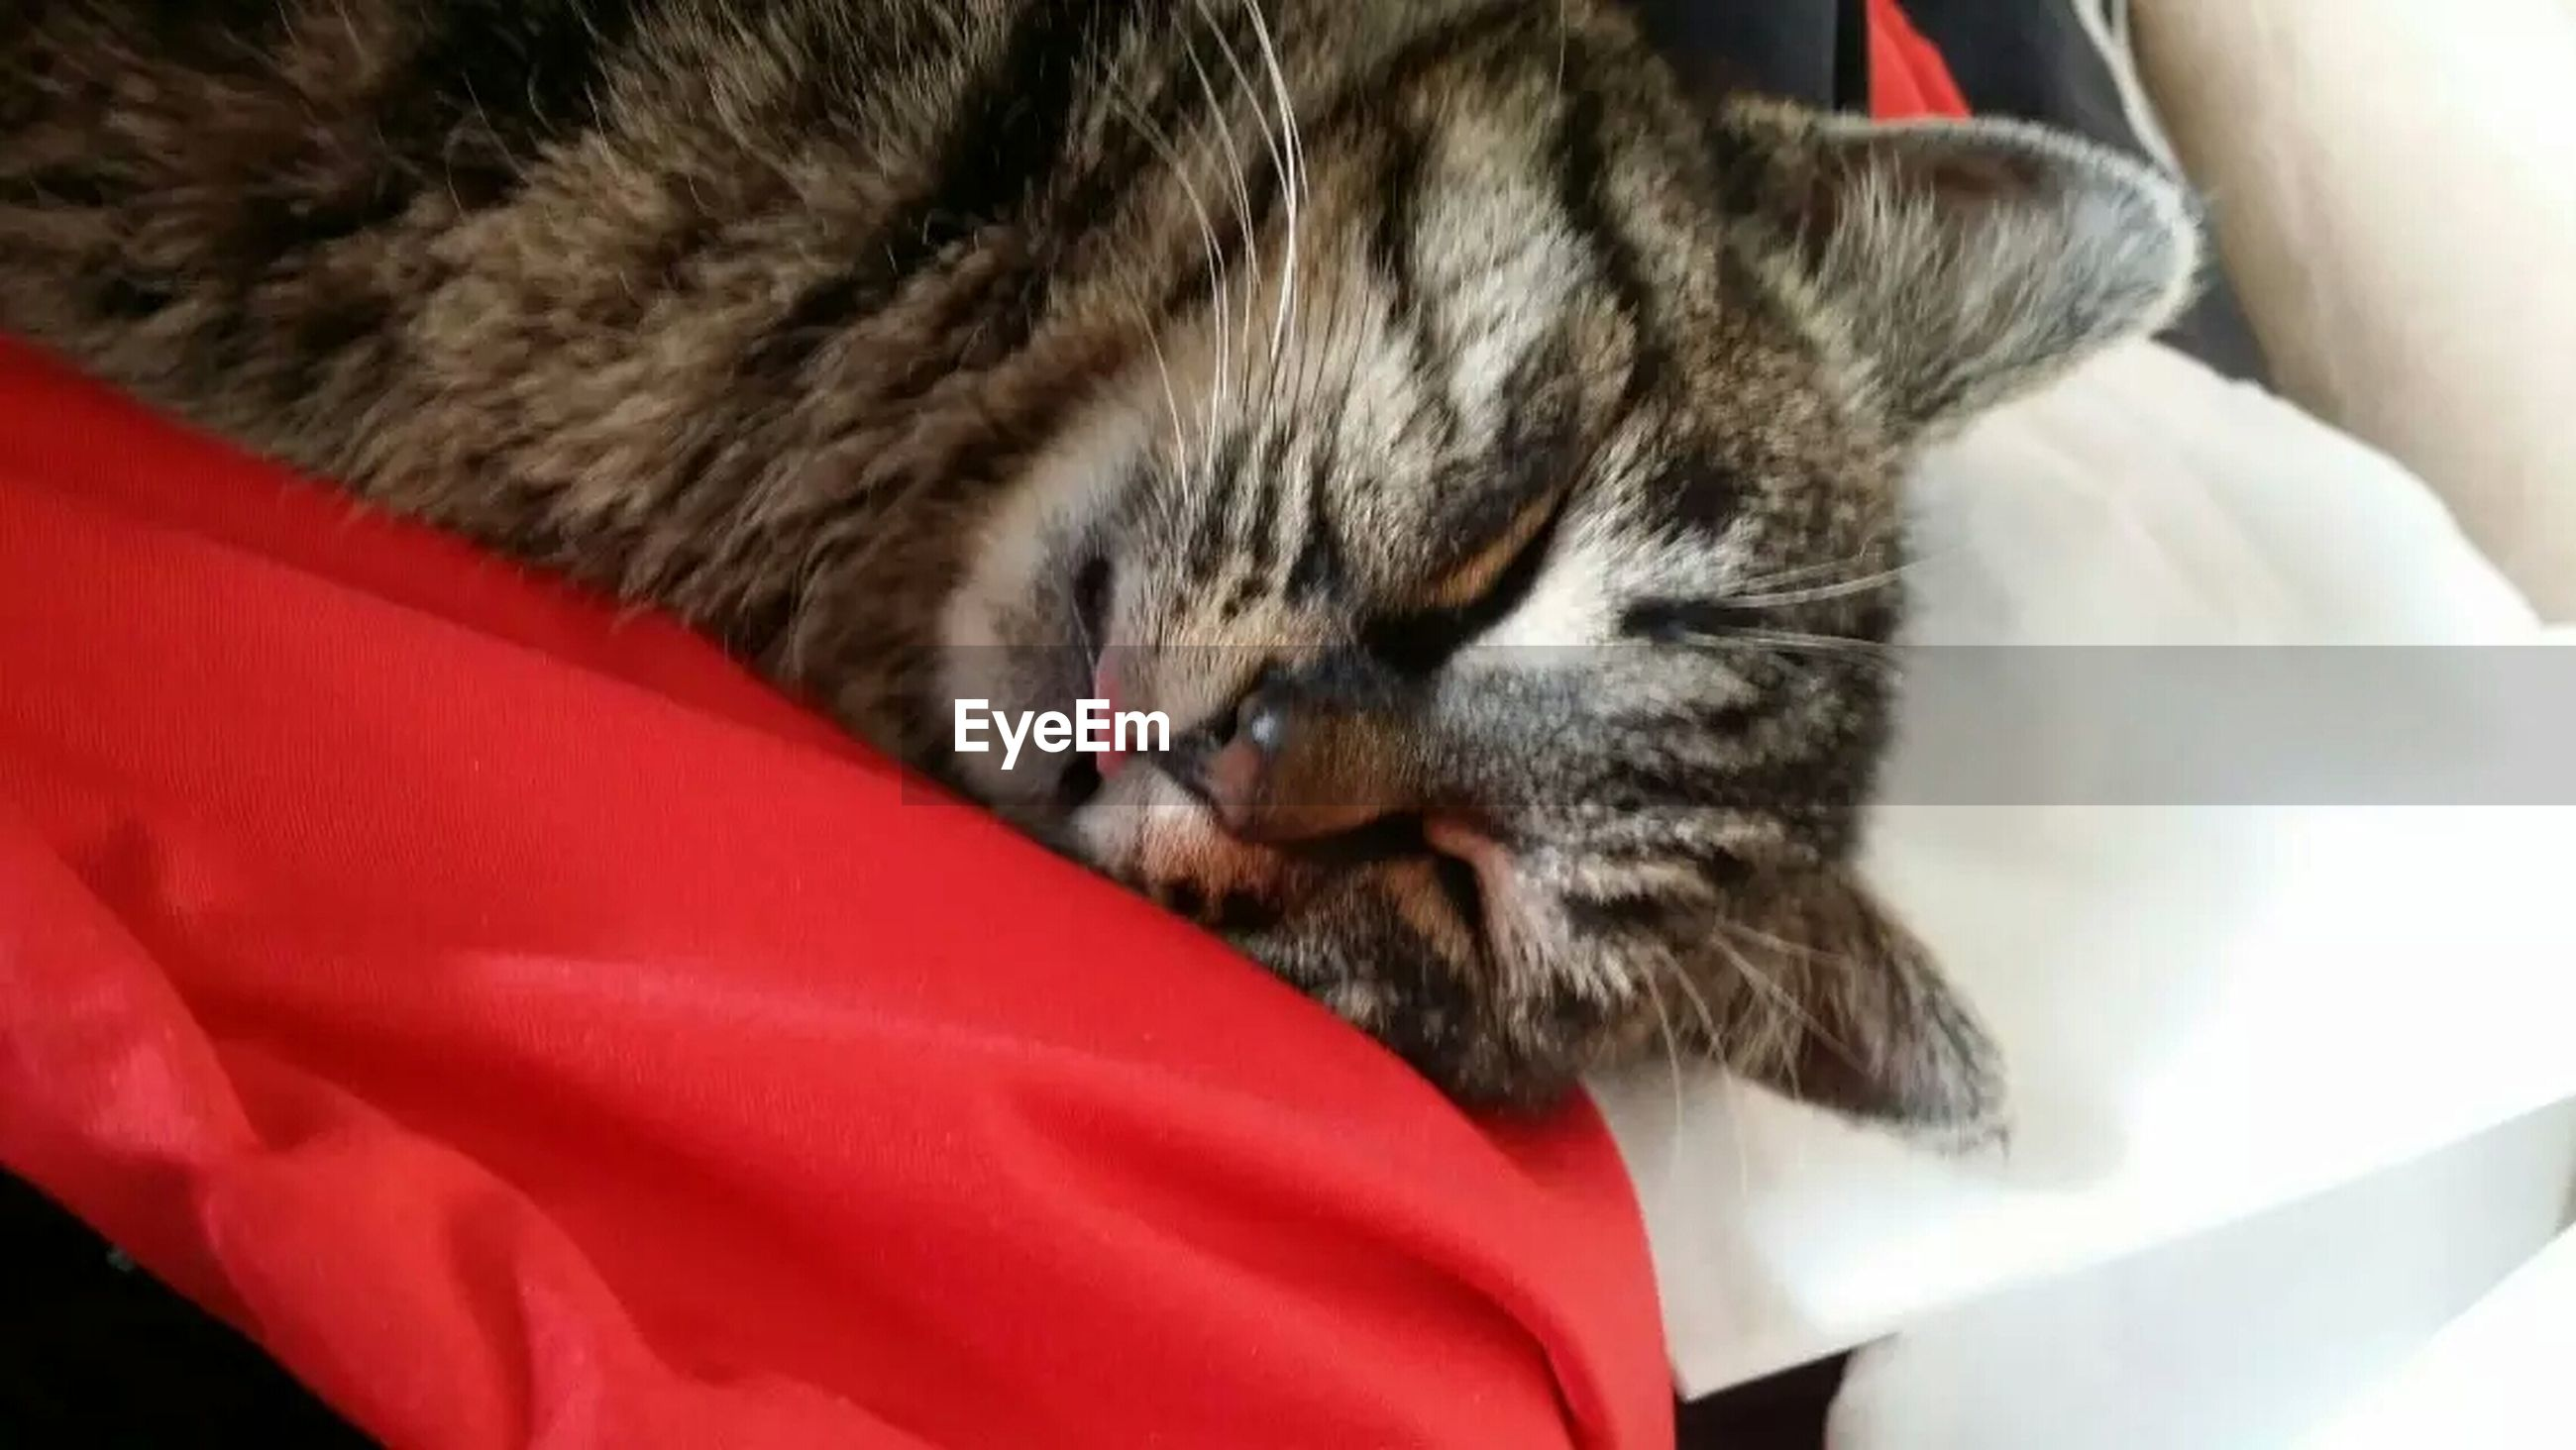 pets, domestic cat, domestic animals, one animal, animal themes, cat, mammal, feline, indoors, relaxation, whisker, close-up, resting, sleeping, lying down, eyes closed, red, animal head, bed, no people